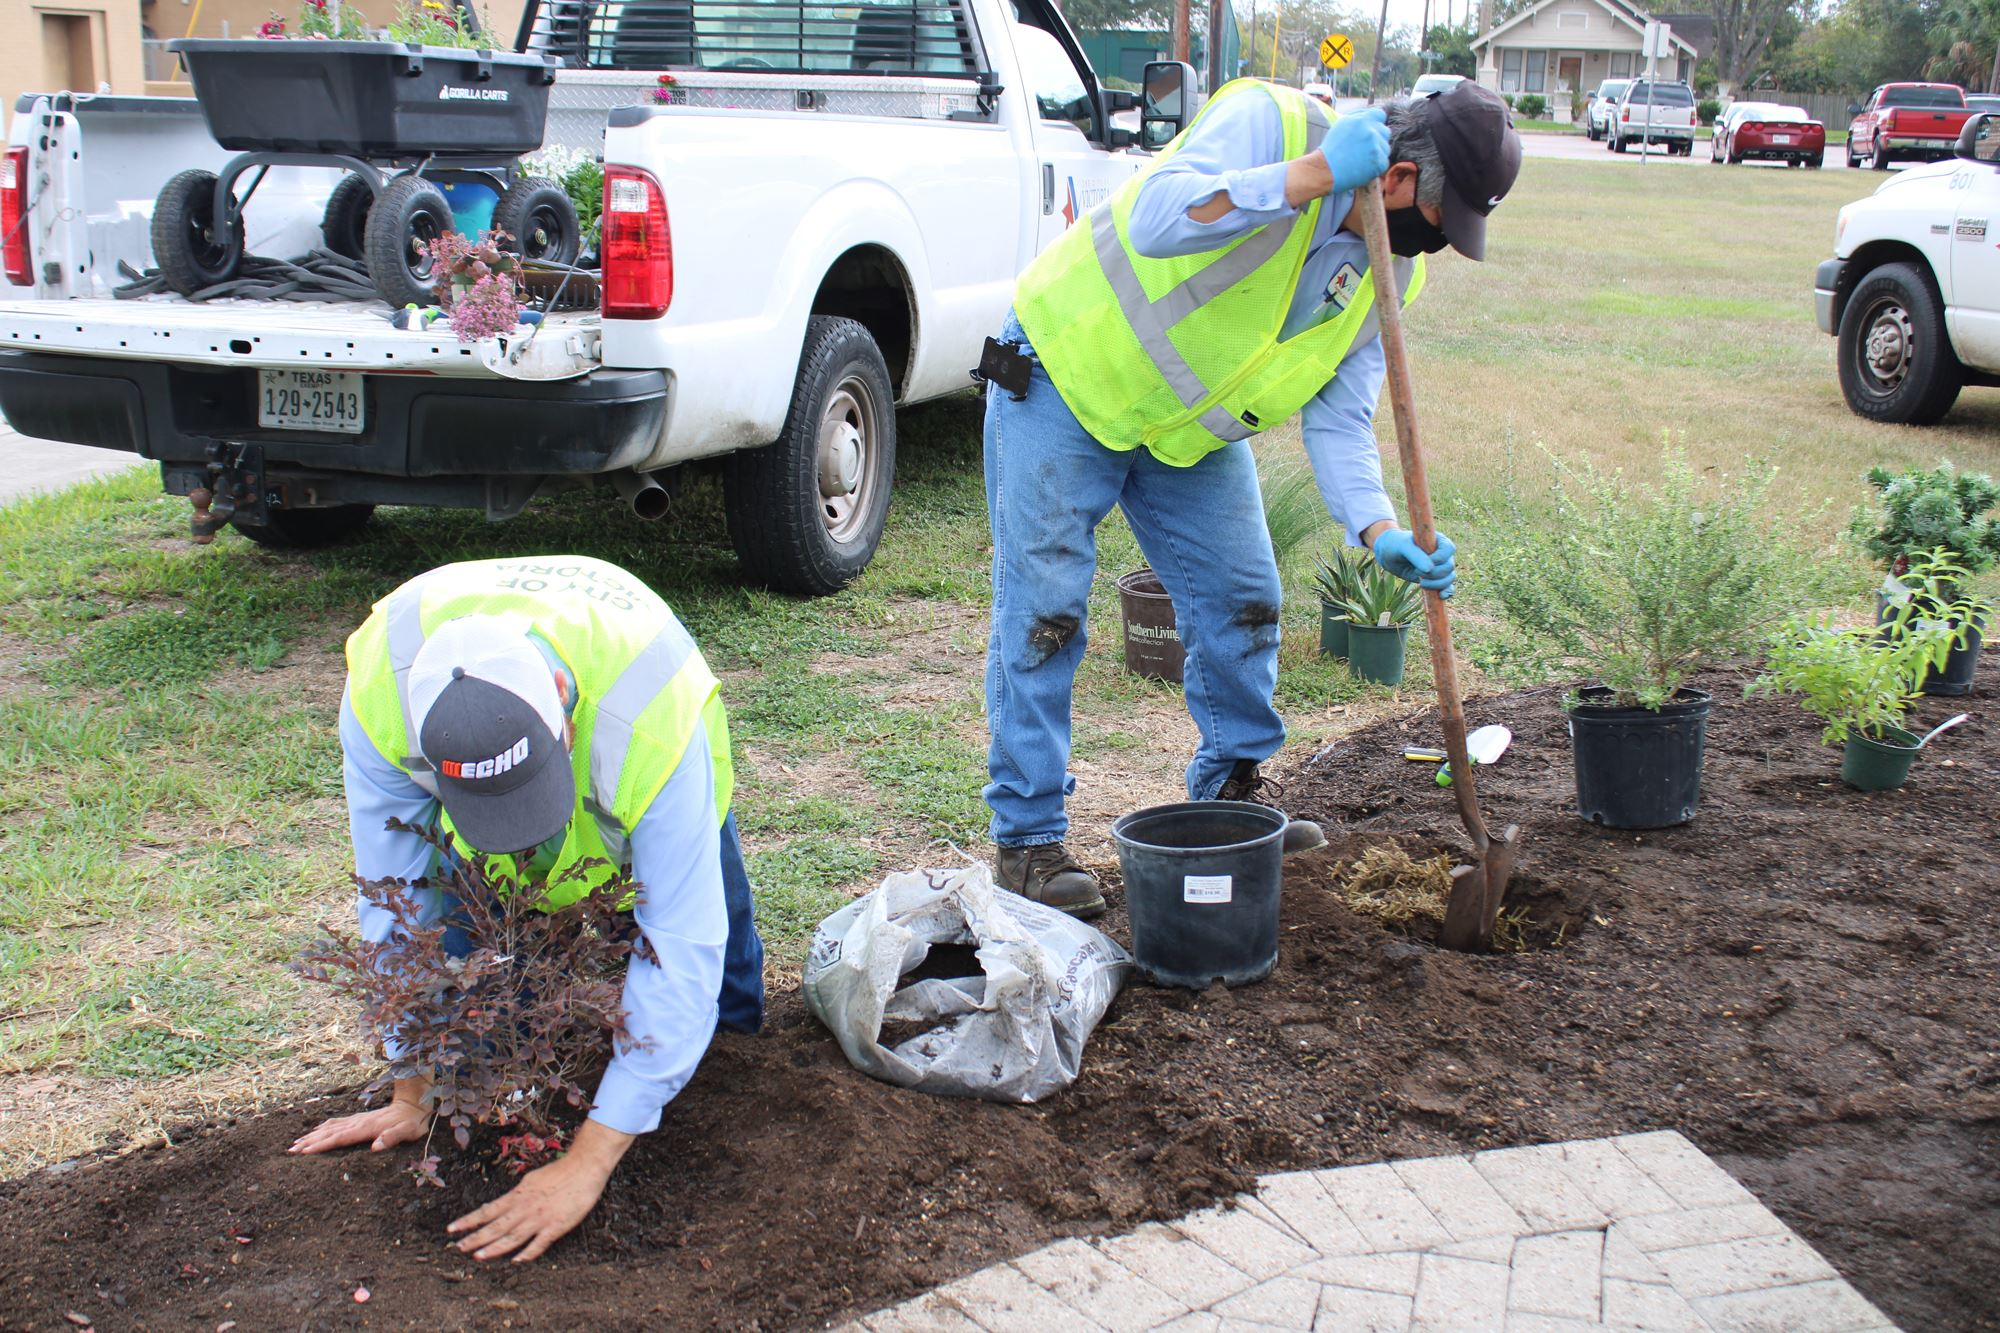 In a flowerbed, a man digs a hole while another man scoops dirt around a recently planted plant.